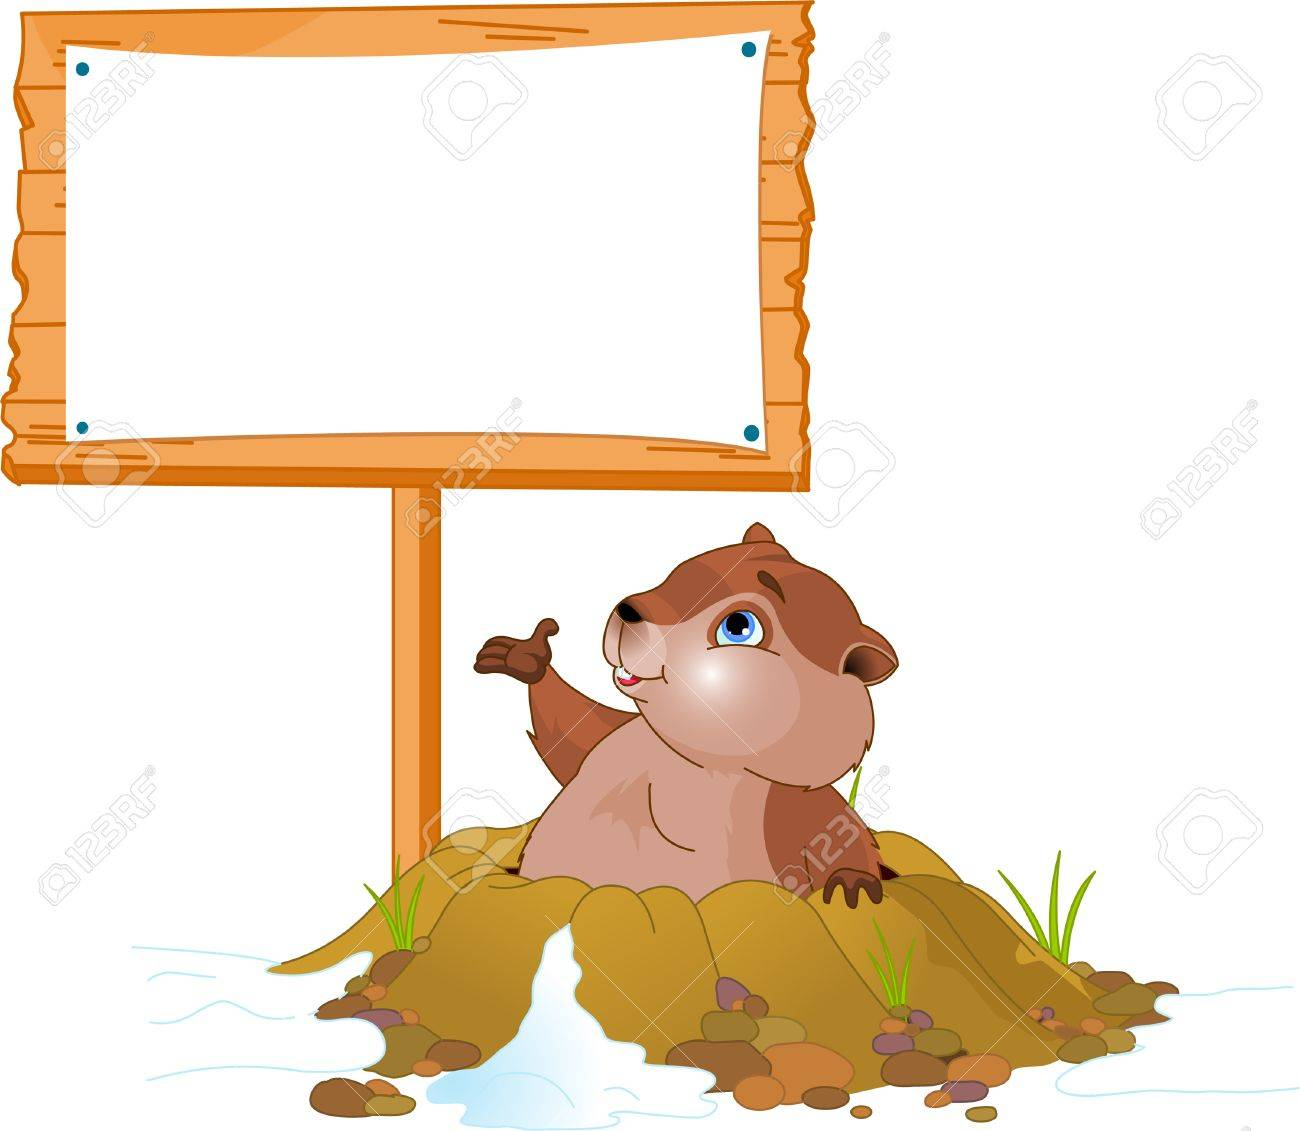 Vector illustration of a cute groundhog popping out of a hole near billboard Stock Vector - 6247204